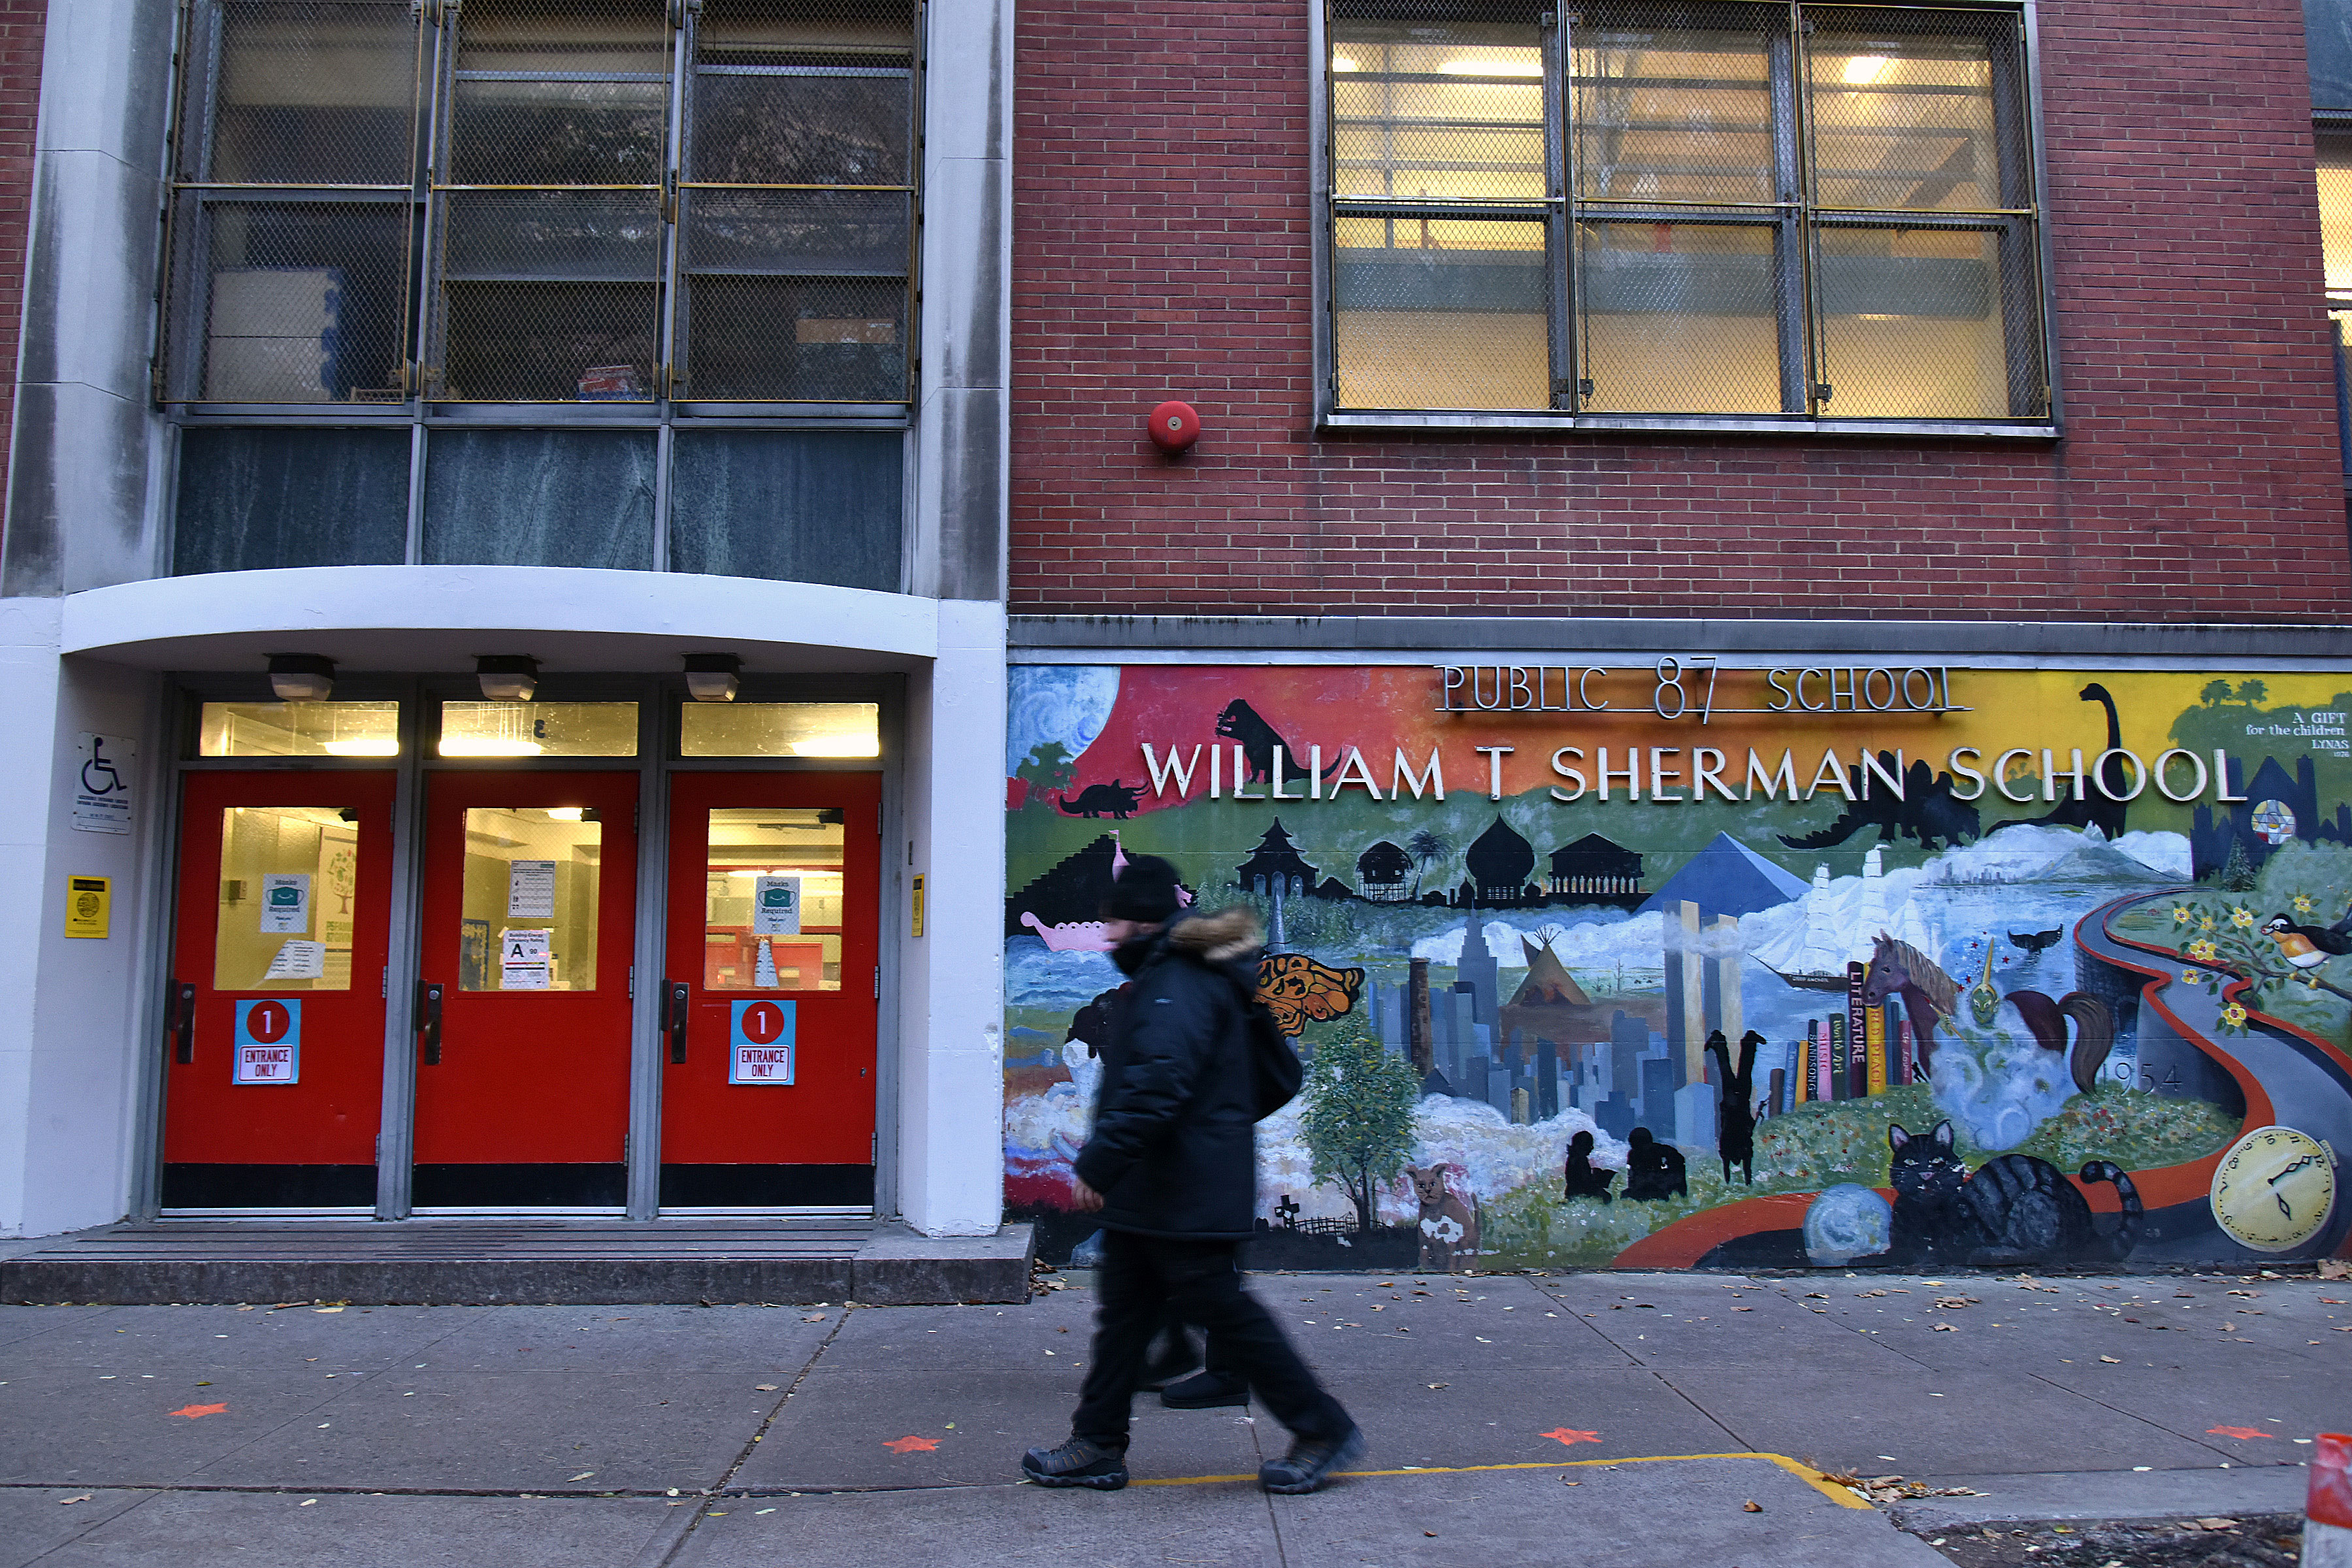 People walk past a public school in New York on November 18.